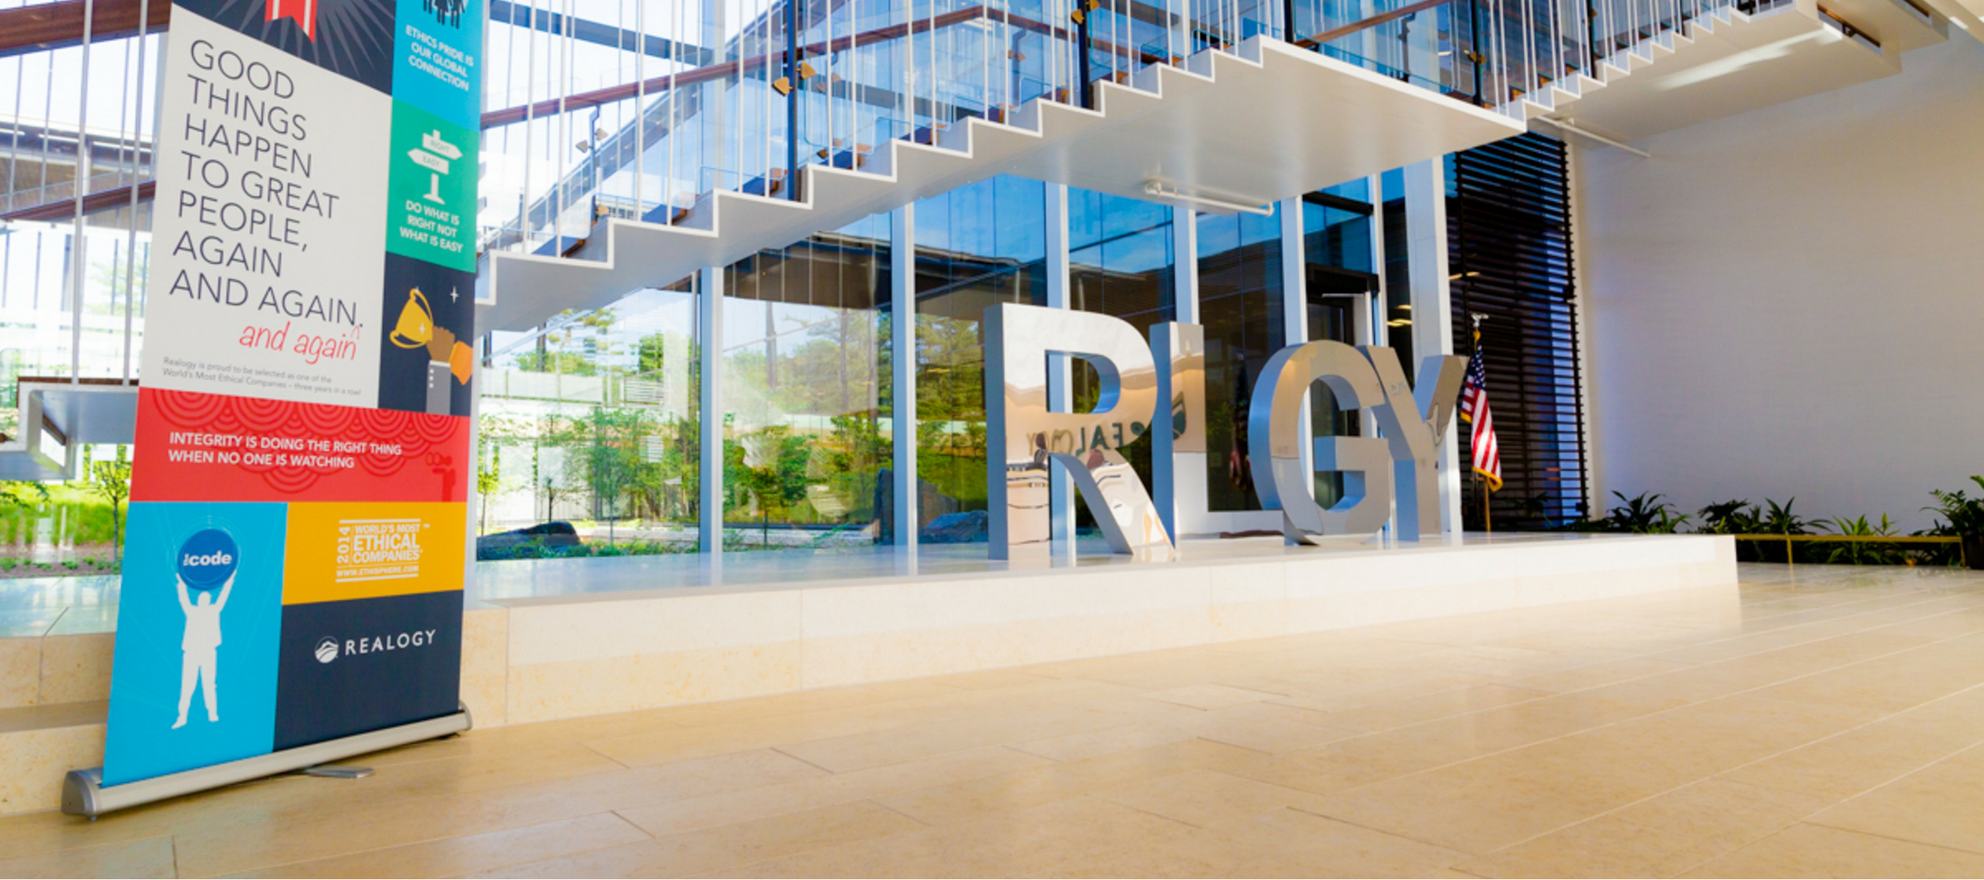 Realogy's corporate reshuffling continues across the business